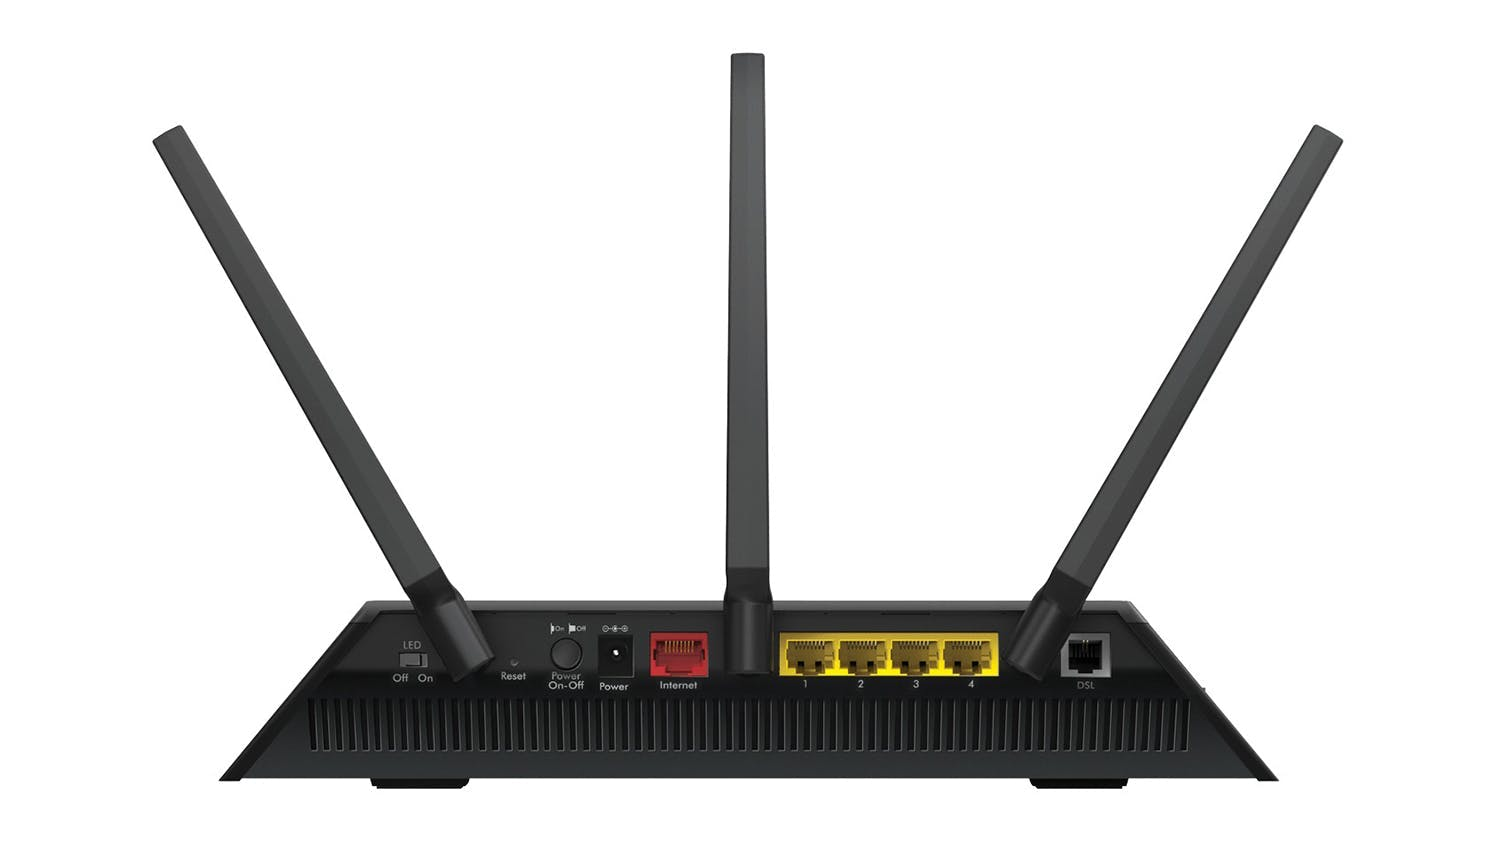 Netgear D7000 Nighthawk VDSL/ADSL AC1900 Wireless Modem Router